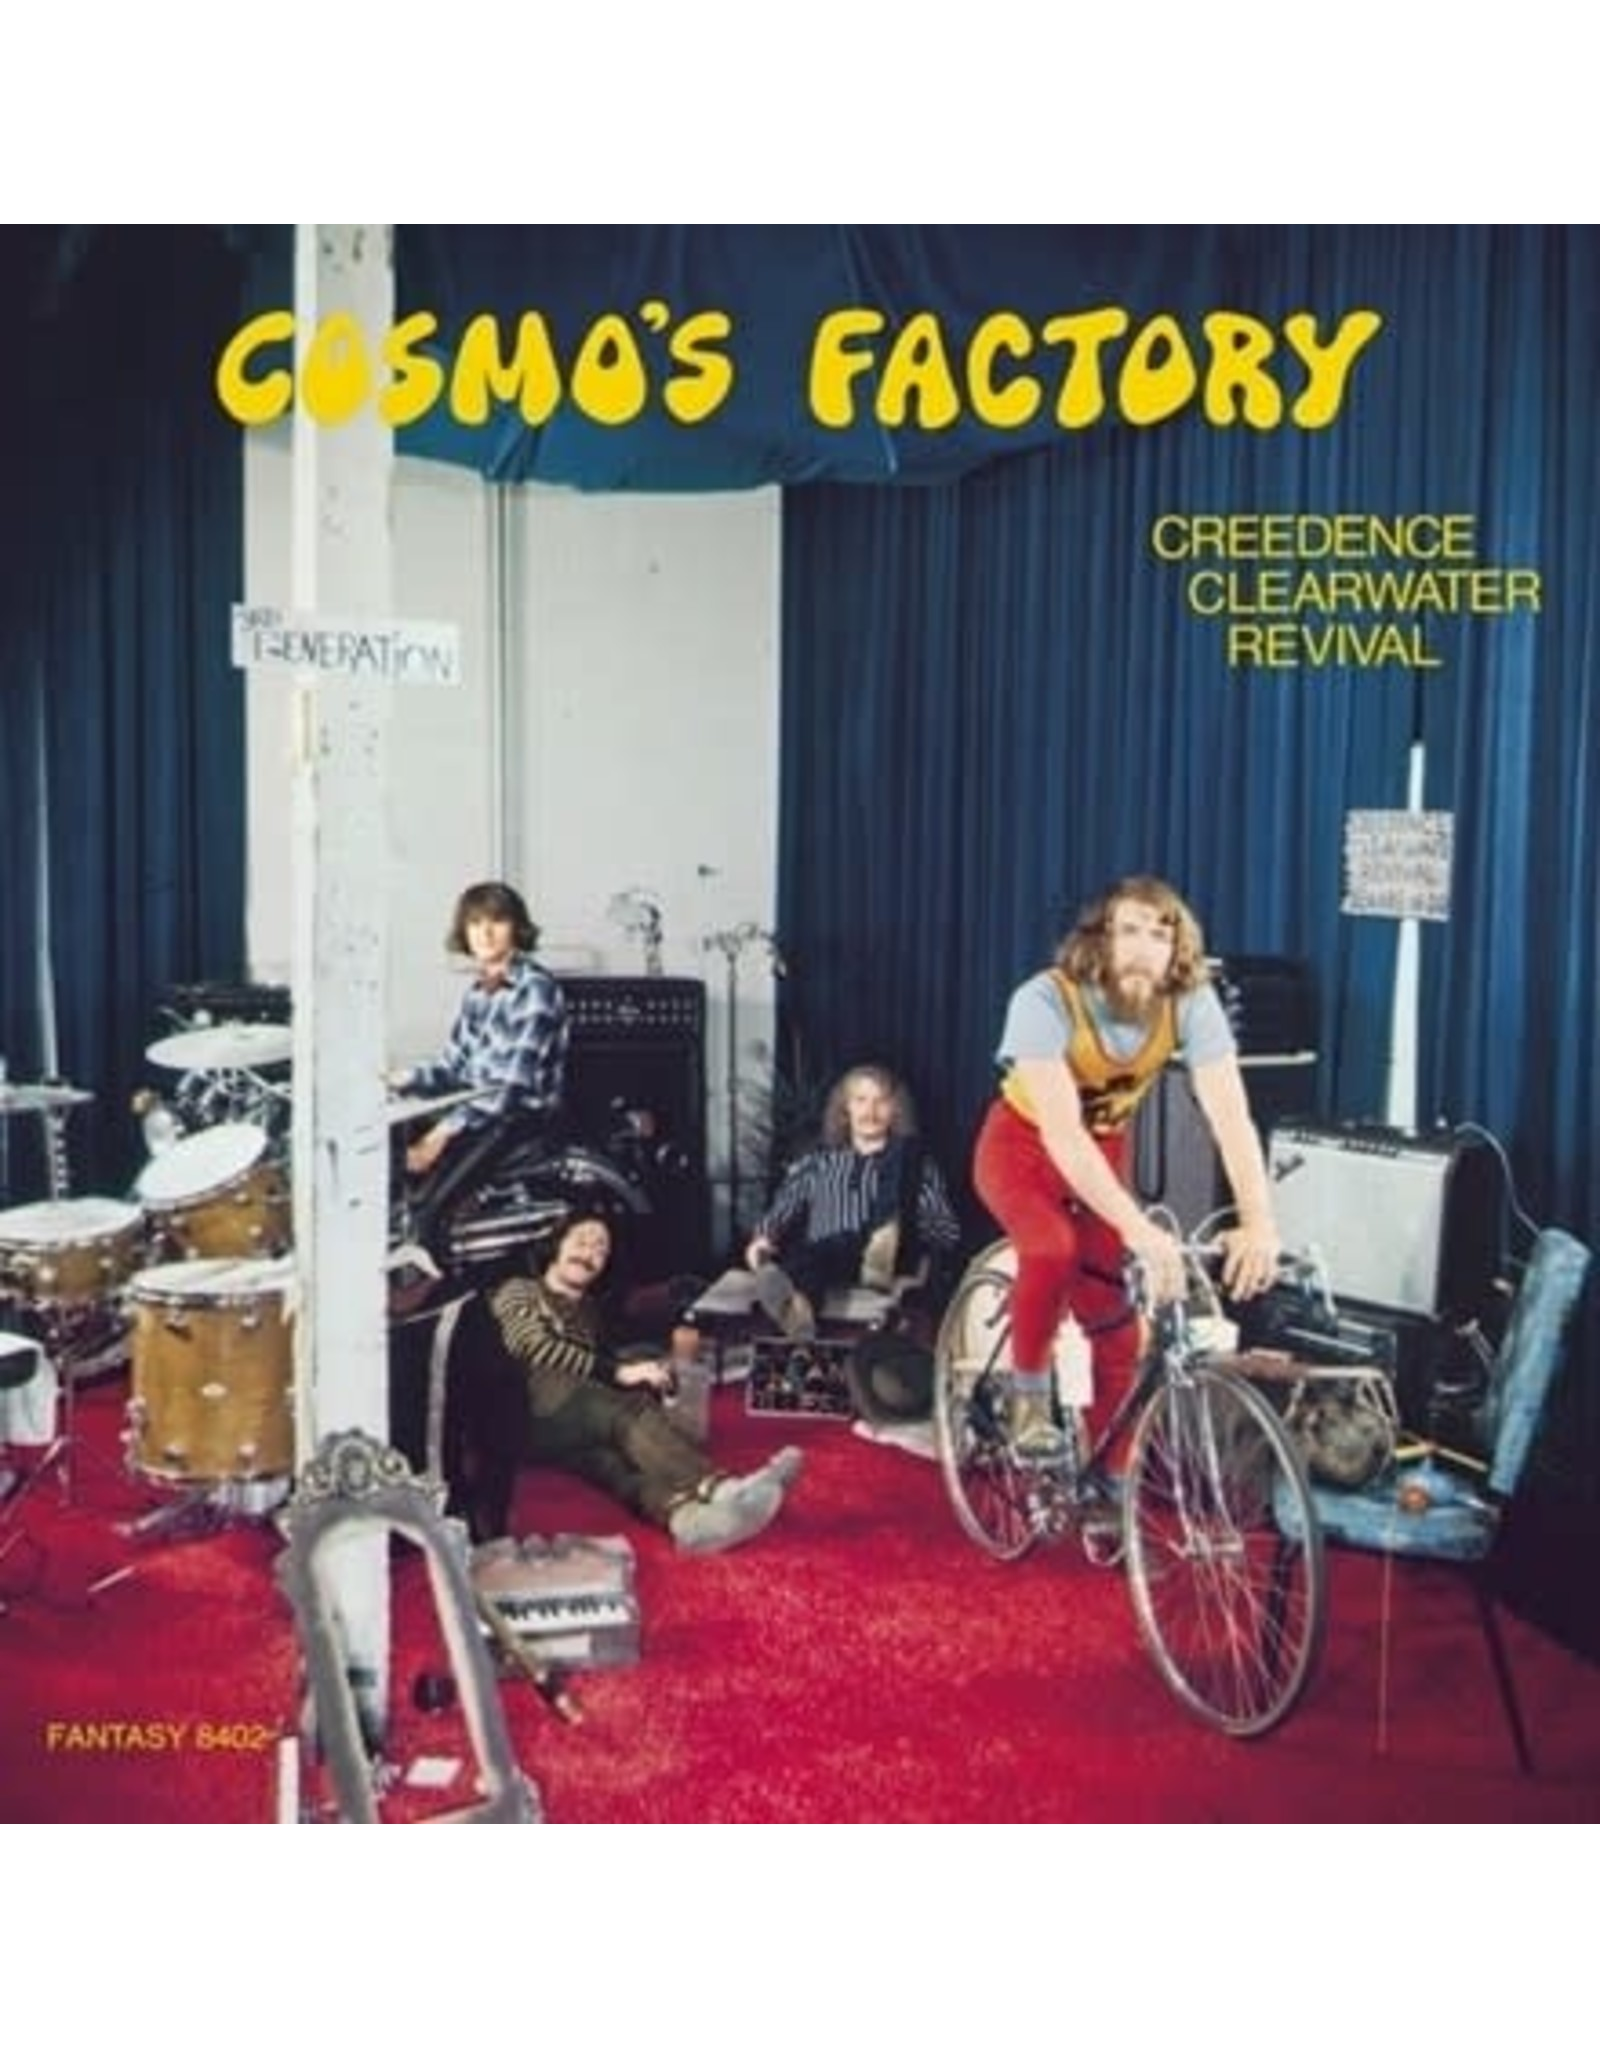 Craft Creedence Clearwater Revival: Cosmo's Factory (half speed 180g Abbey Road remaster) LP